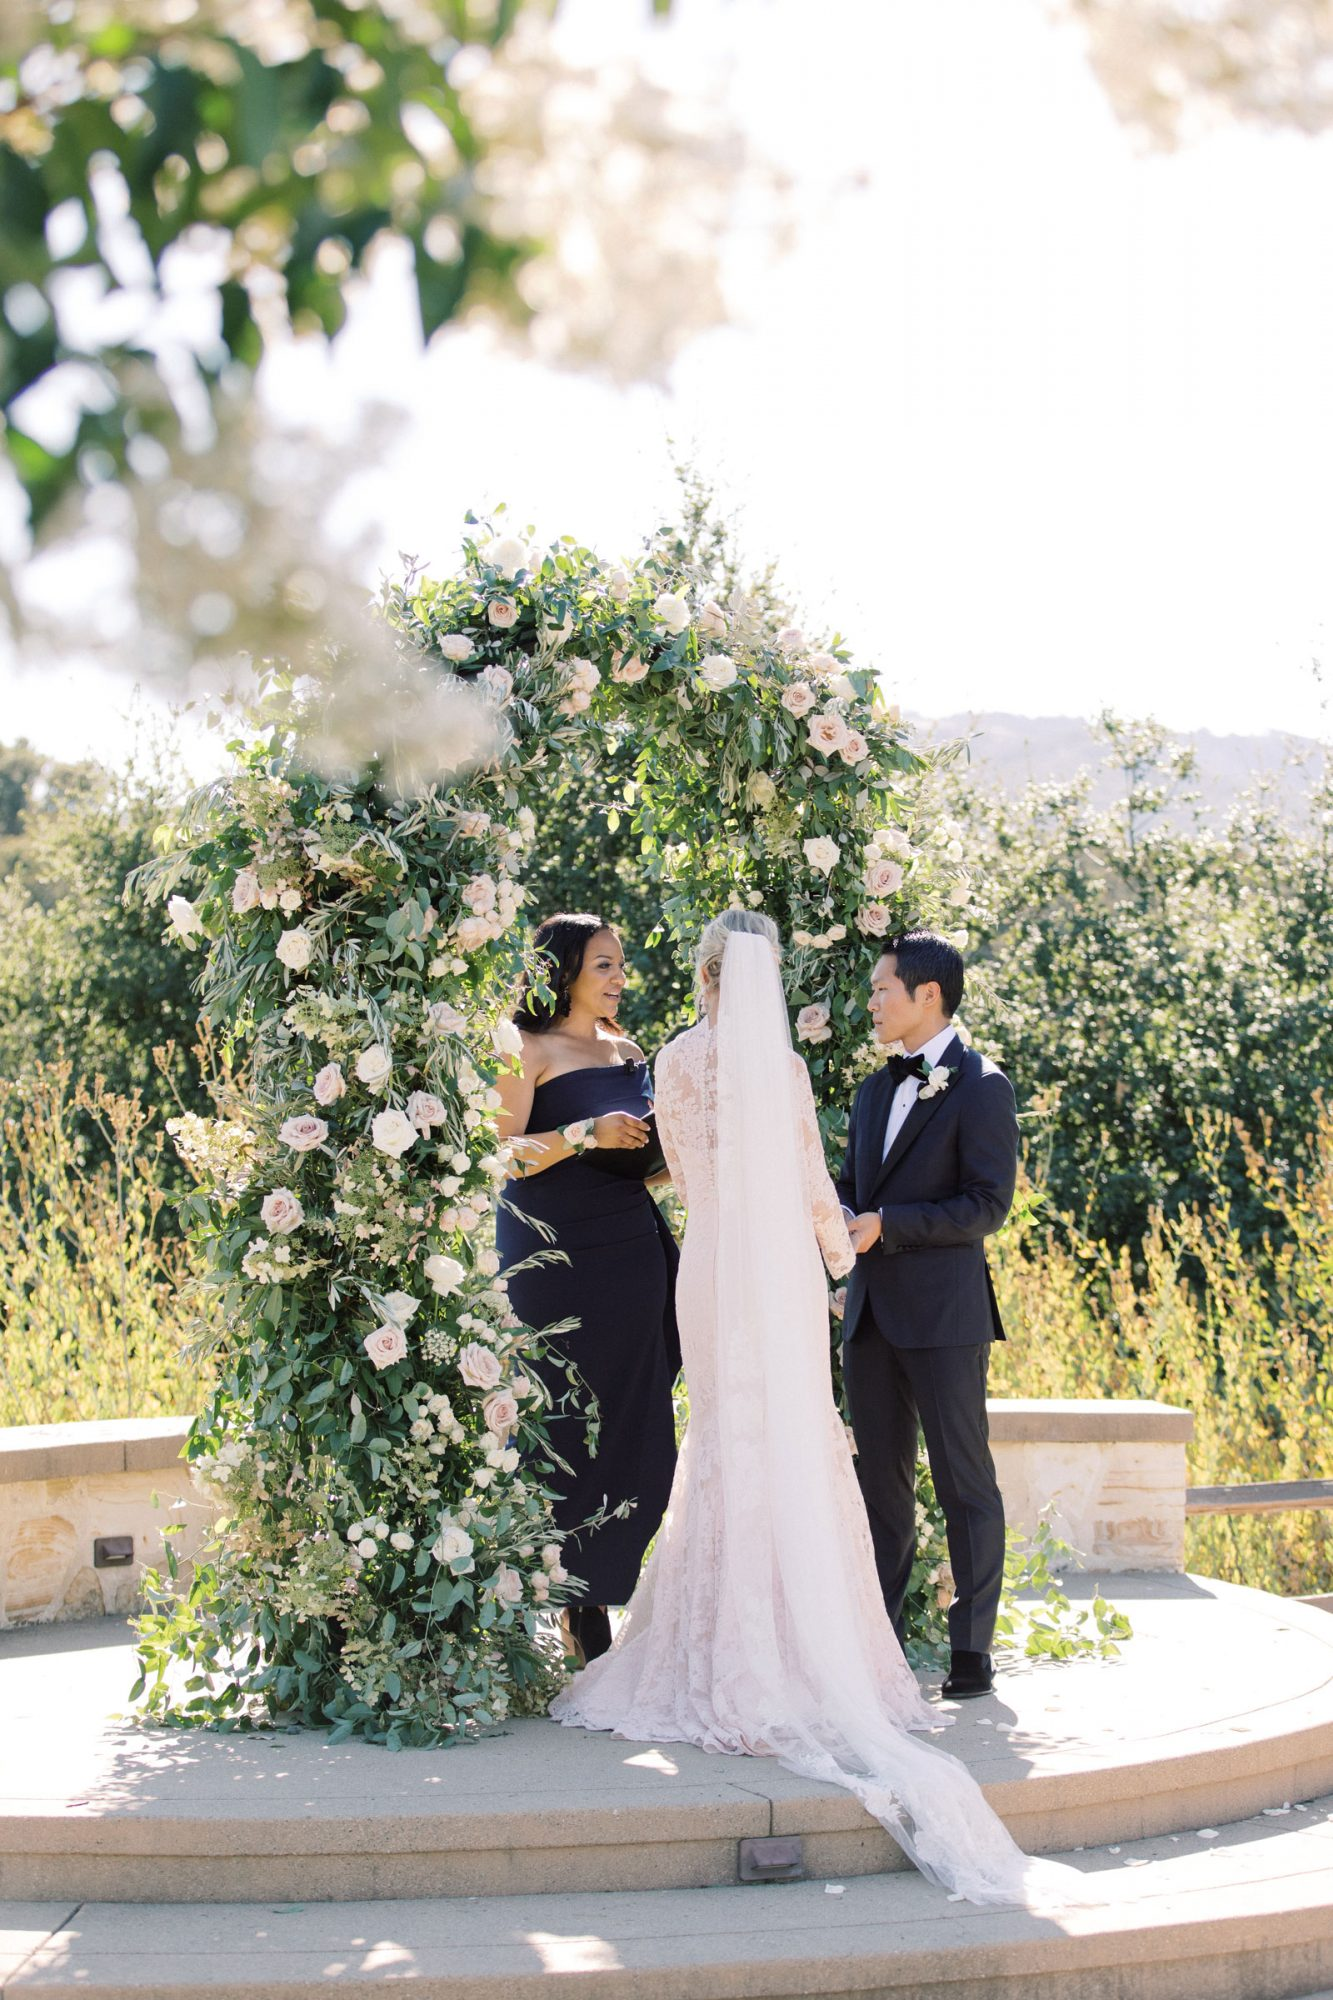 brider and groom in front of floral arch during ceremony